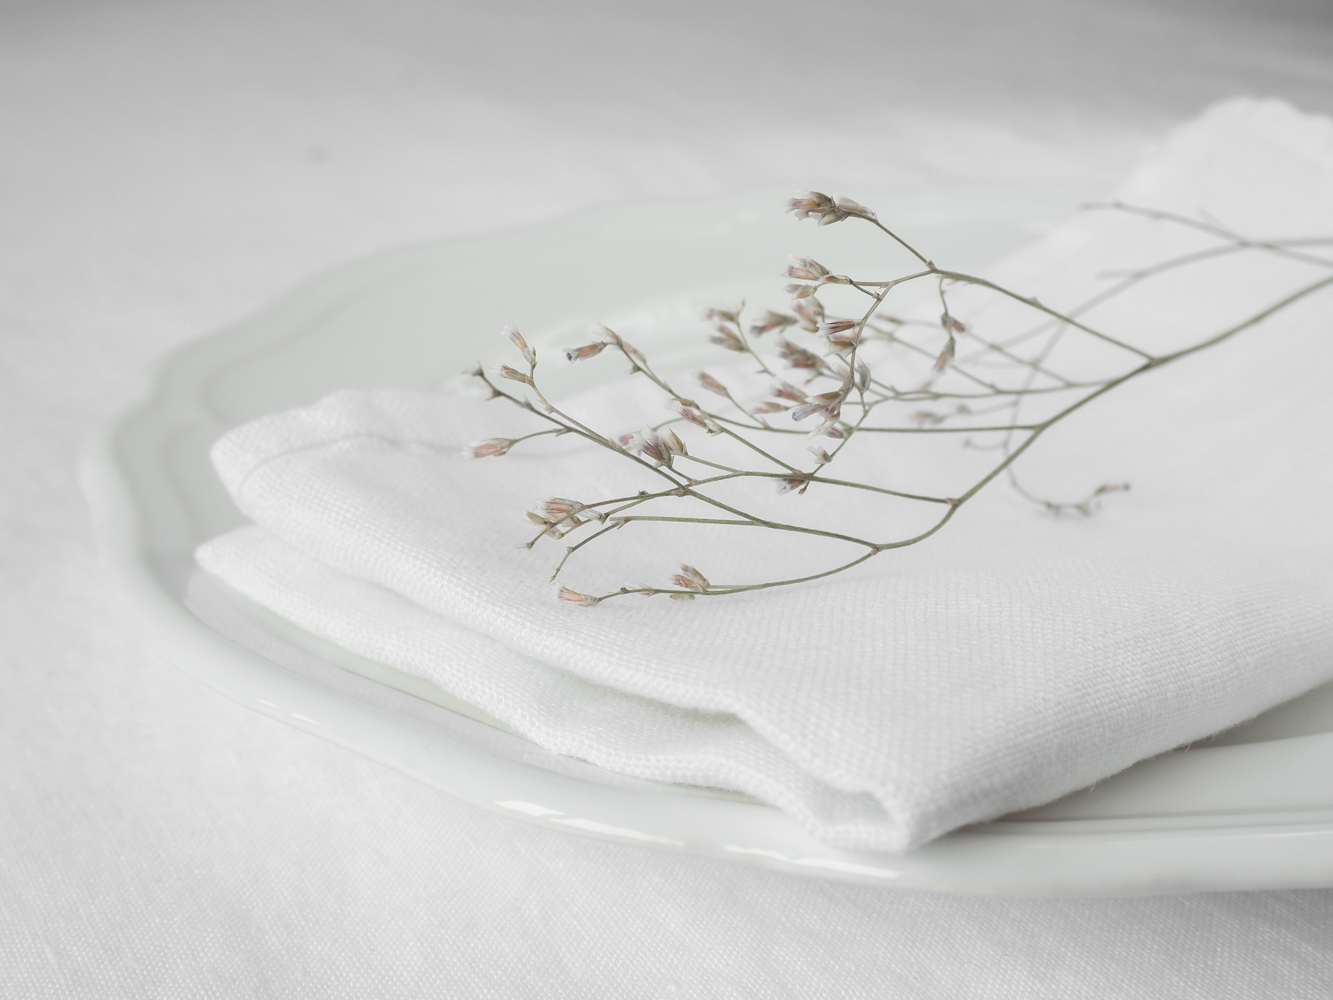 Table setting with a linen napkins